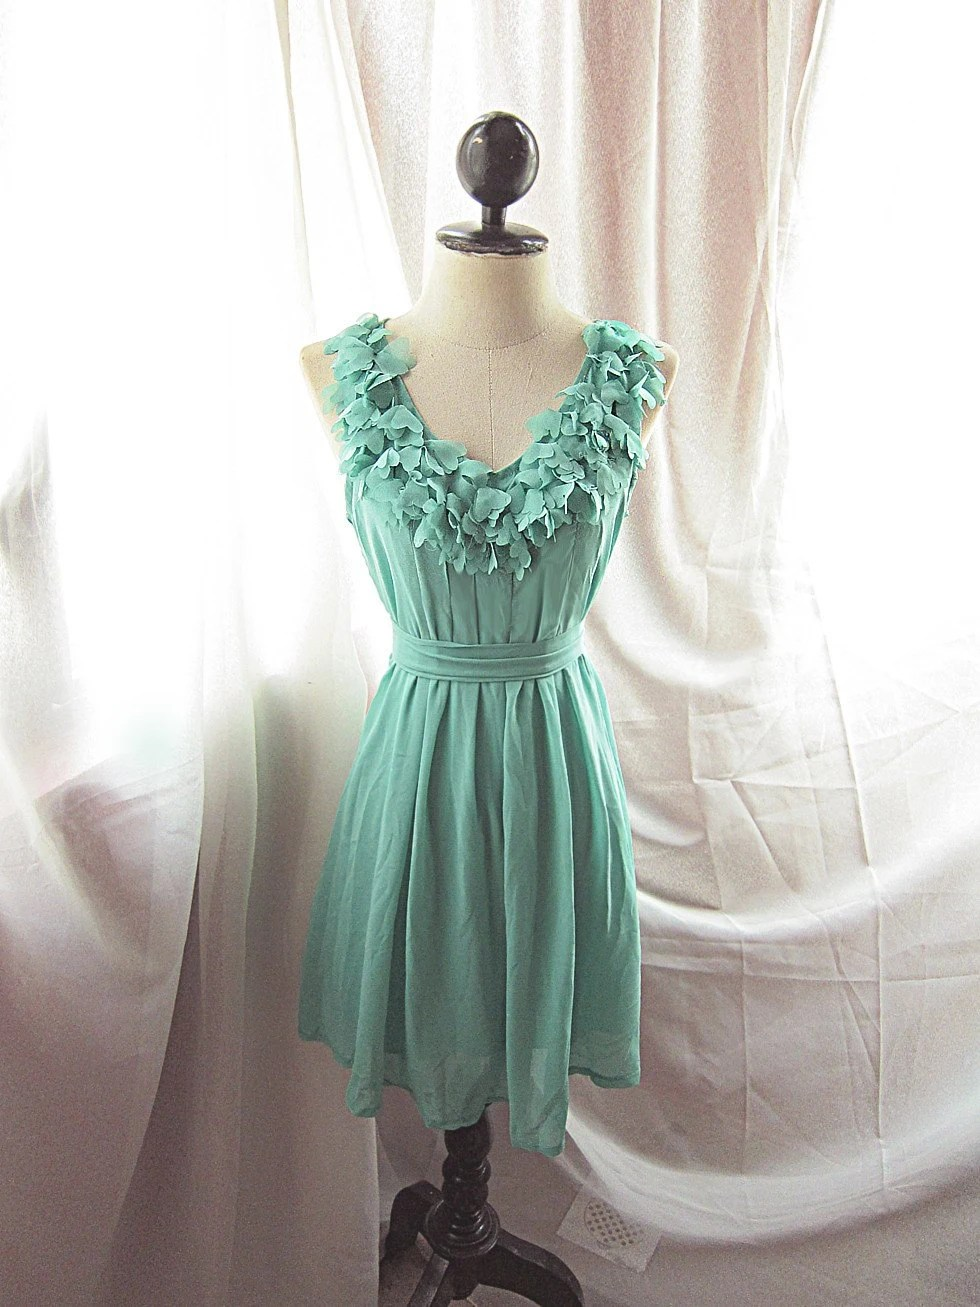 Lovely Soft Minty Green Misty Vine Nature Spring Dreamy Romantic Havisham Mille Feuille Heart Cutouts Flirty Chiffon Flowy Dress